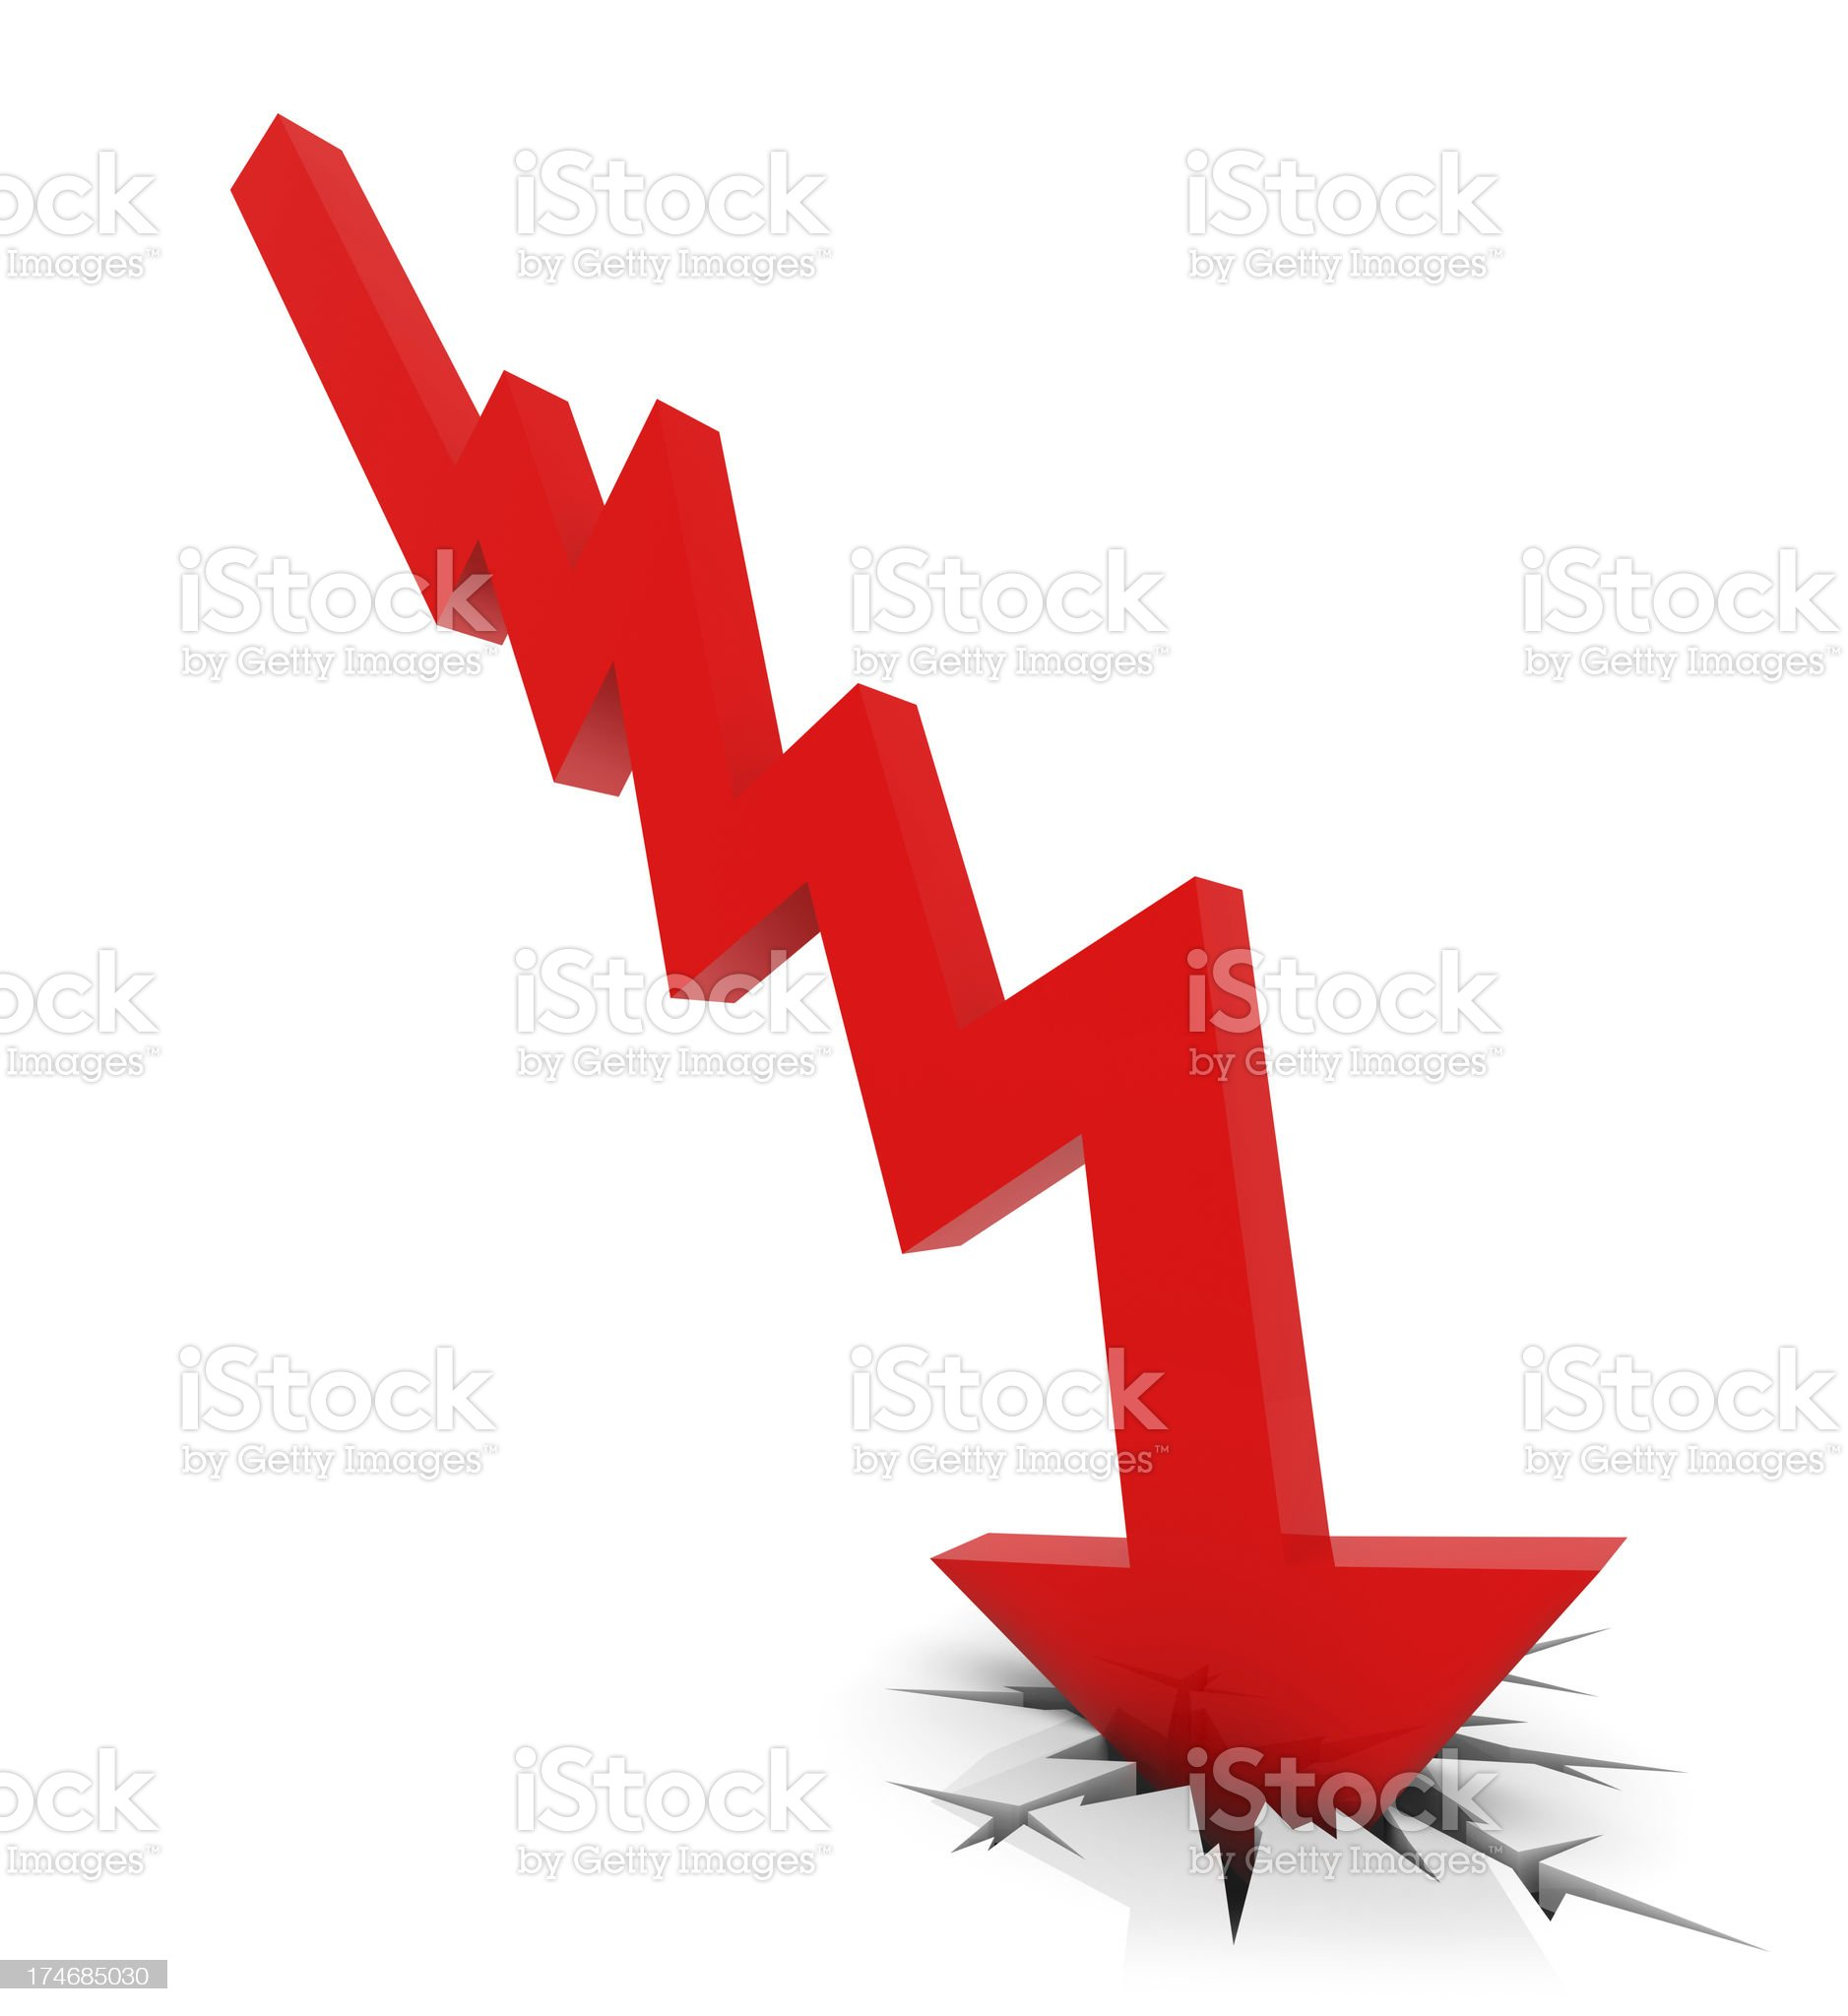 Recession Chart royalty-free stock photo